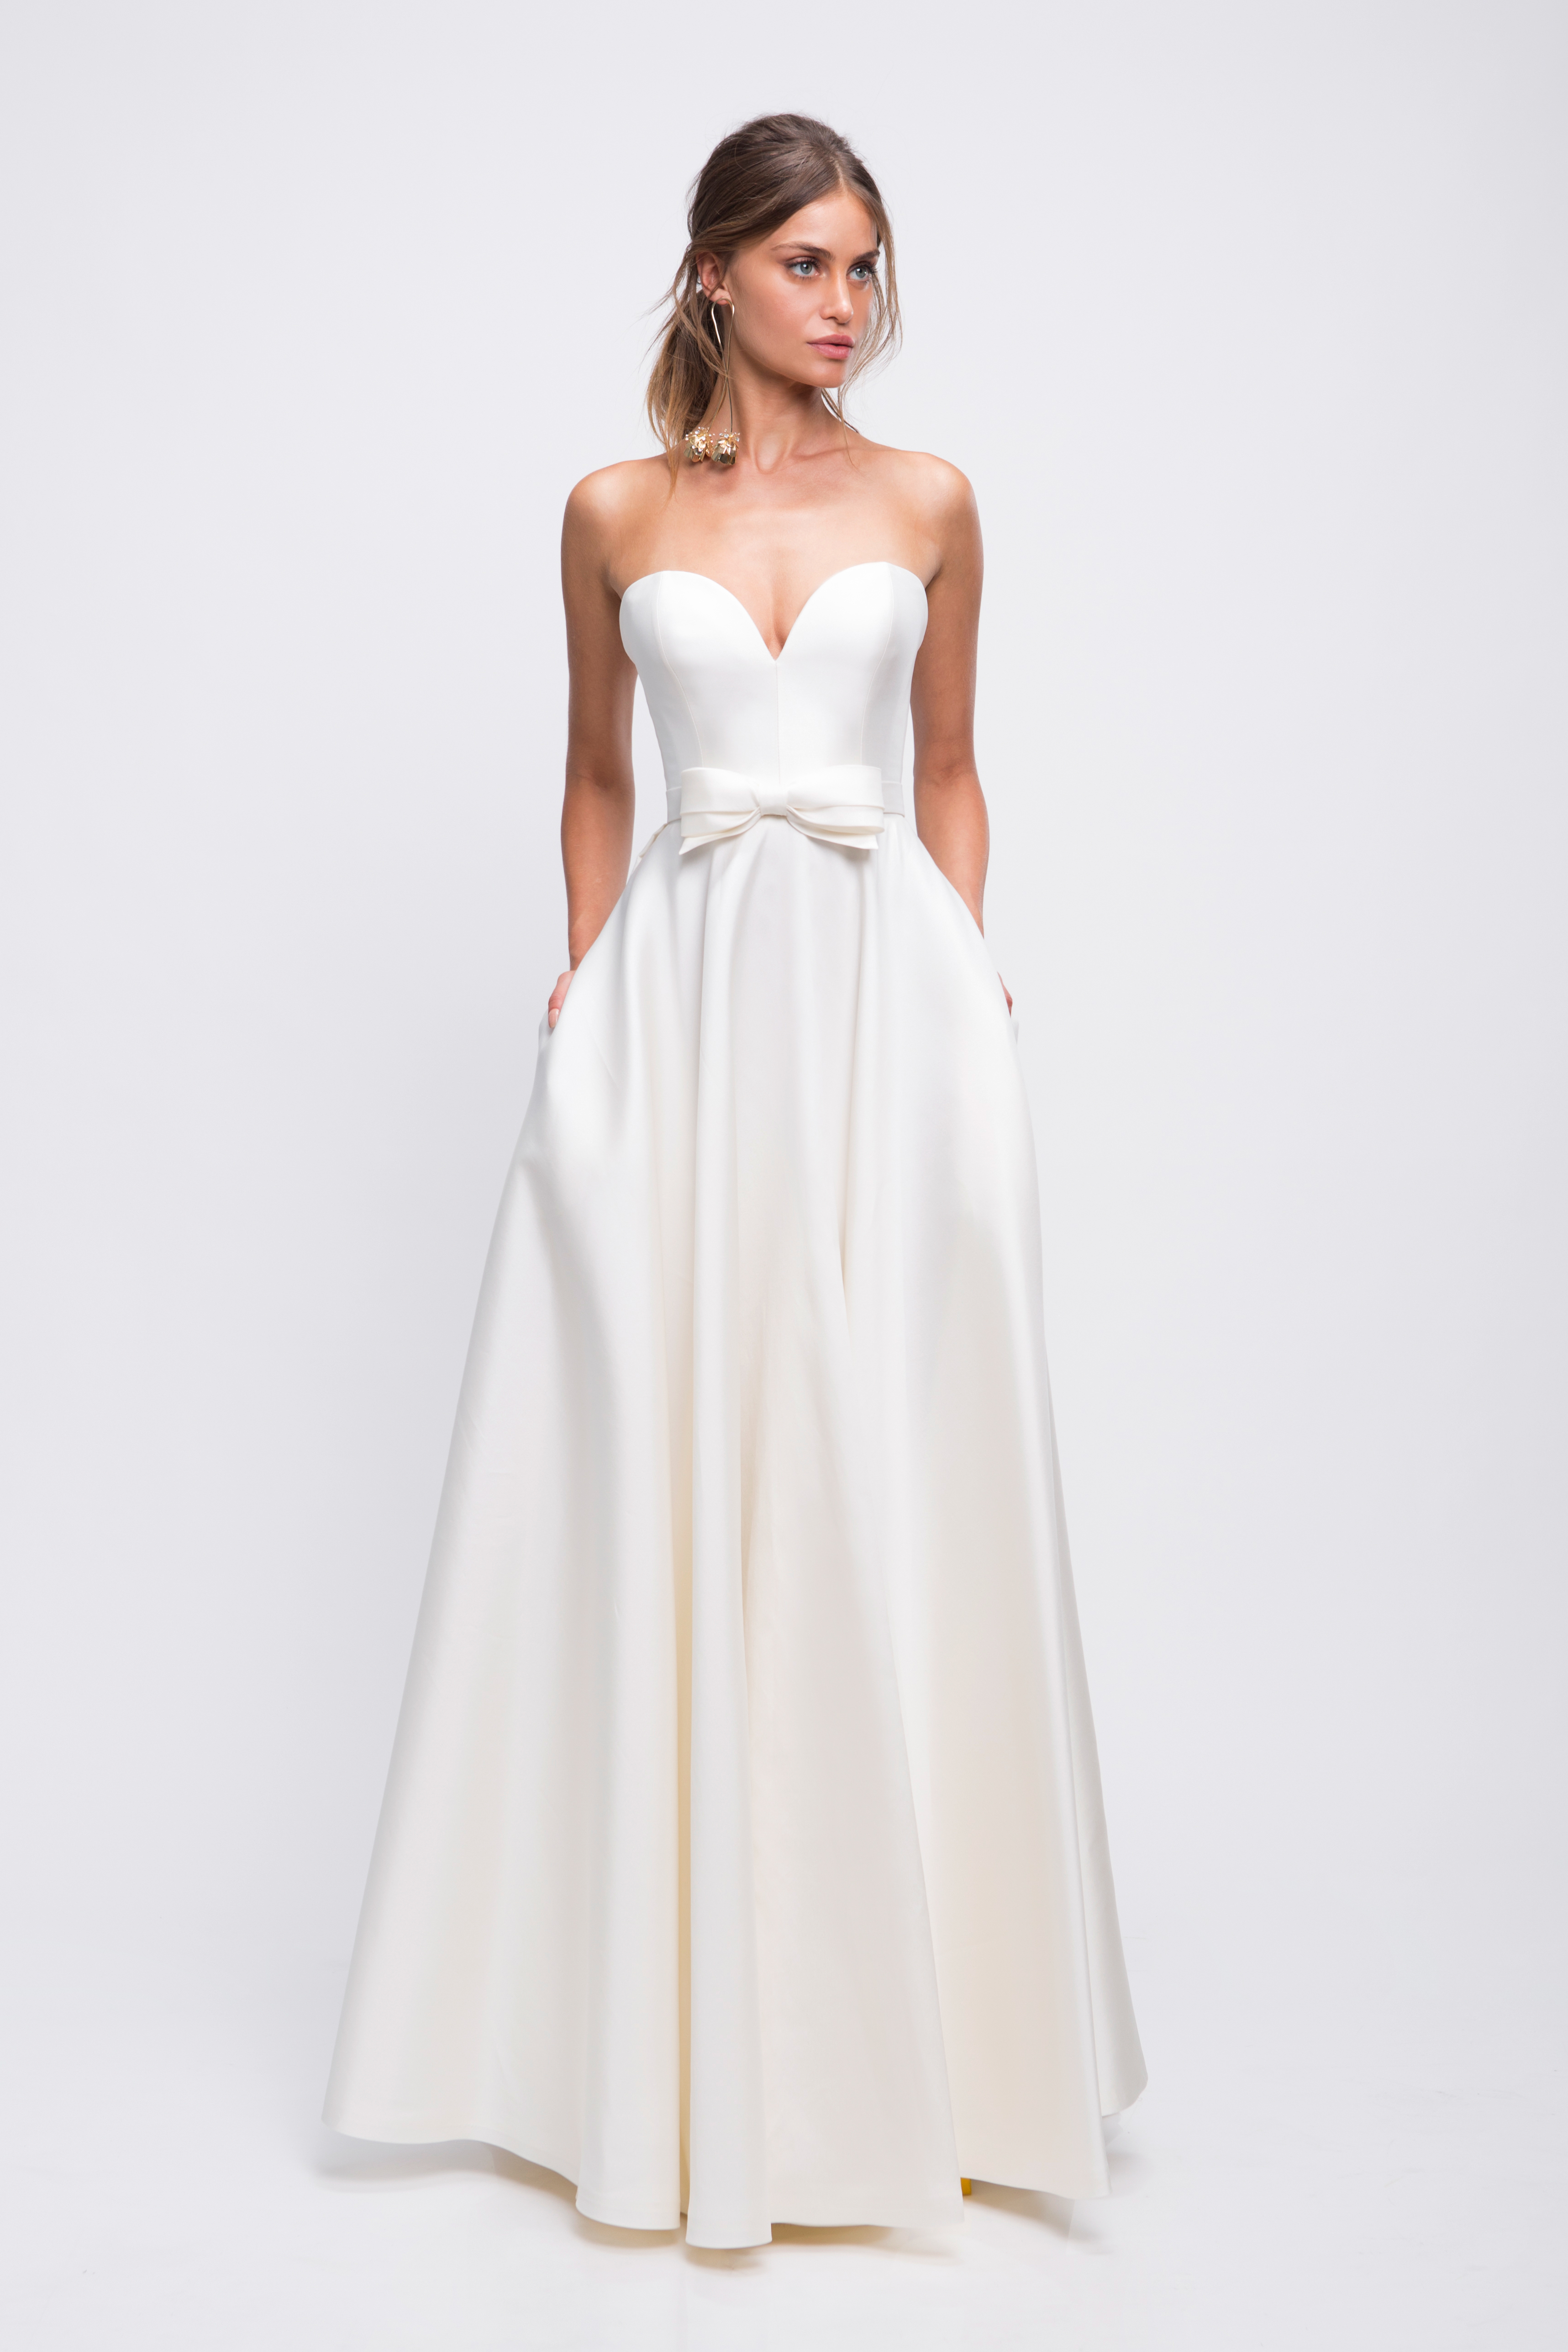 Lihi Hod Fall 2019 Wedding Dress Collection